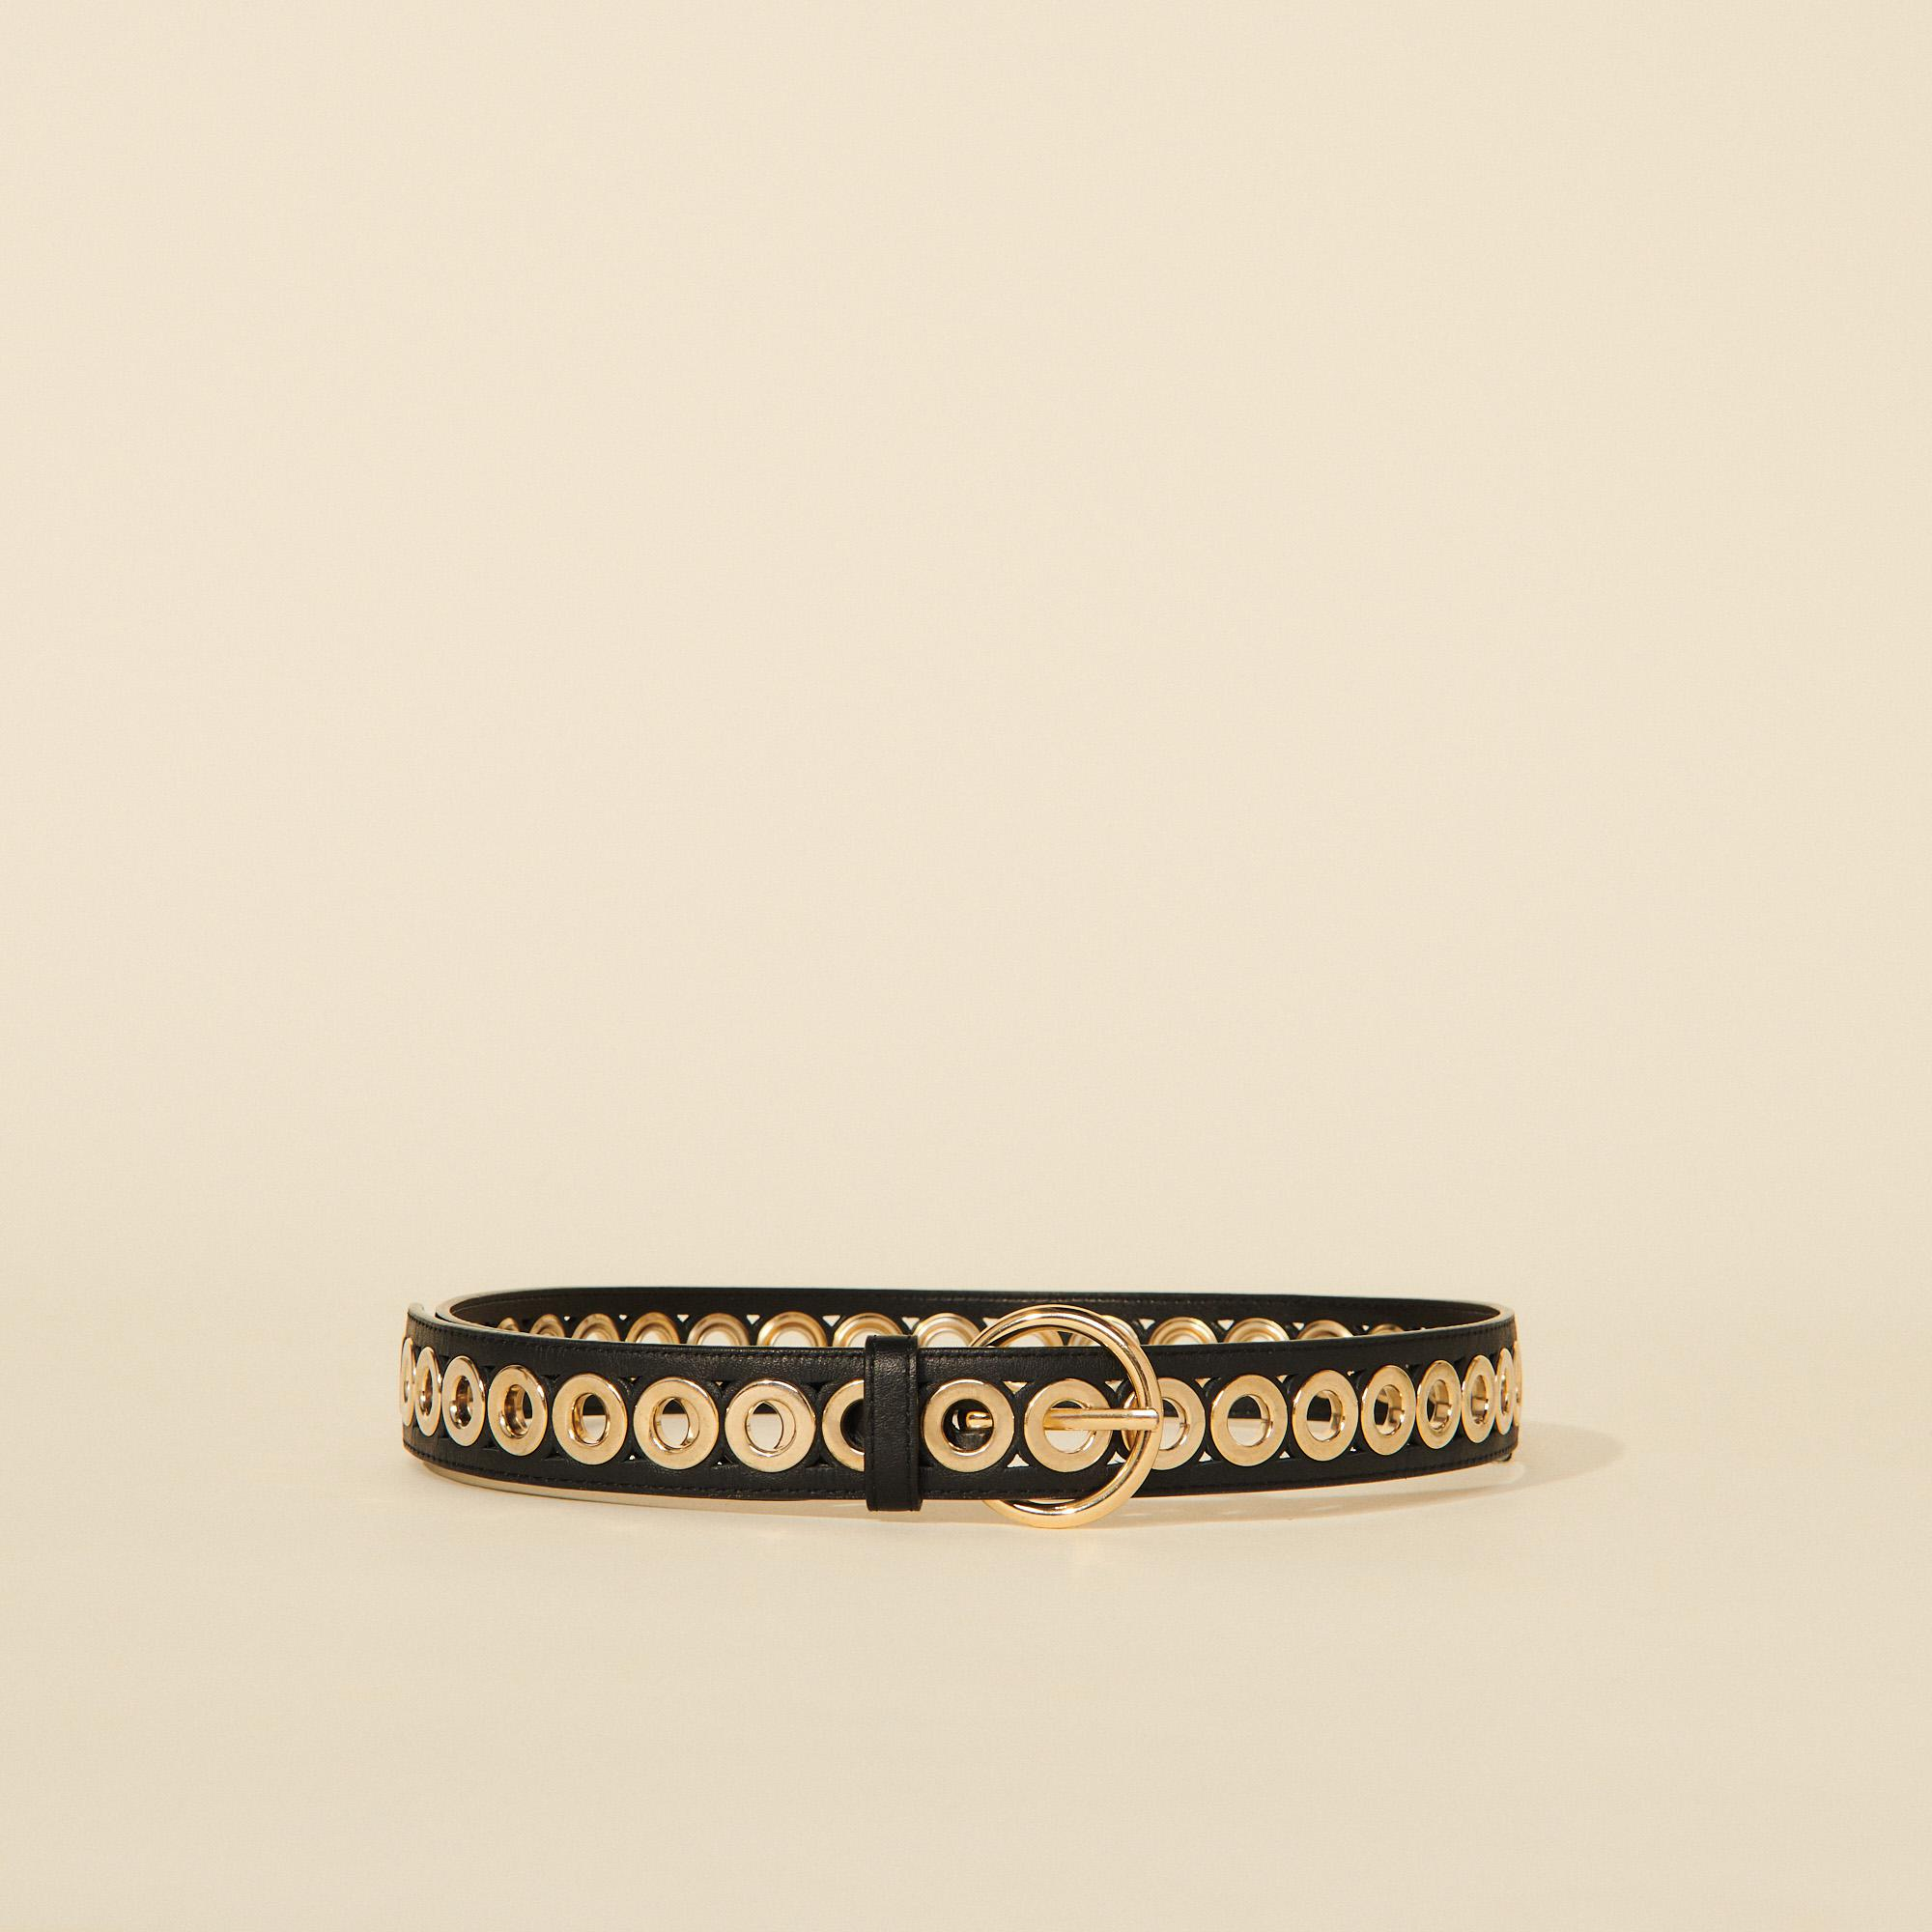 Belt with round buckle and eyelets